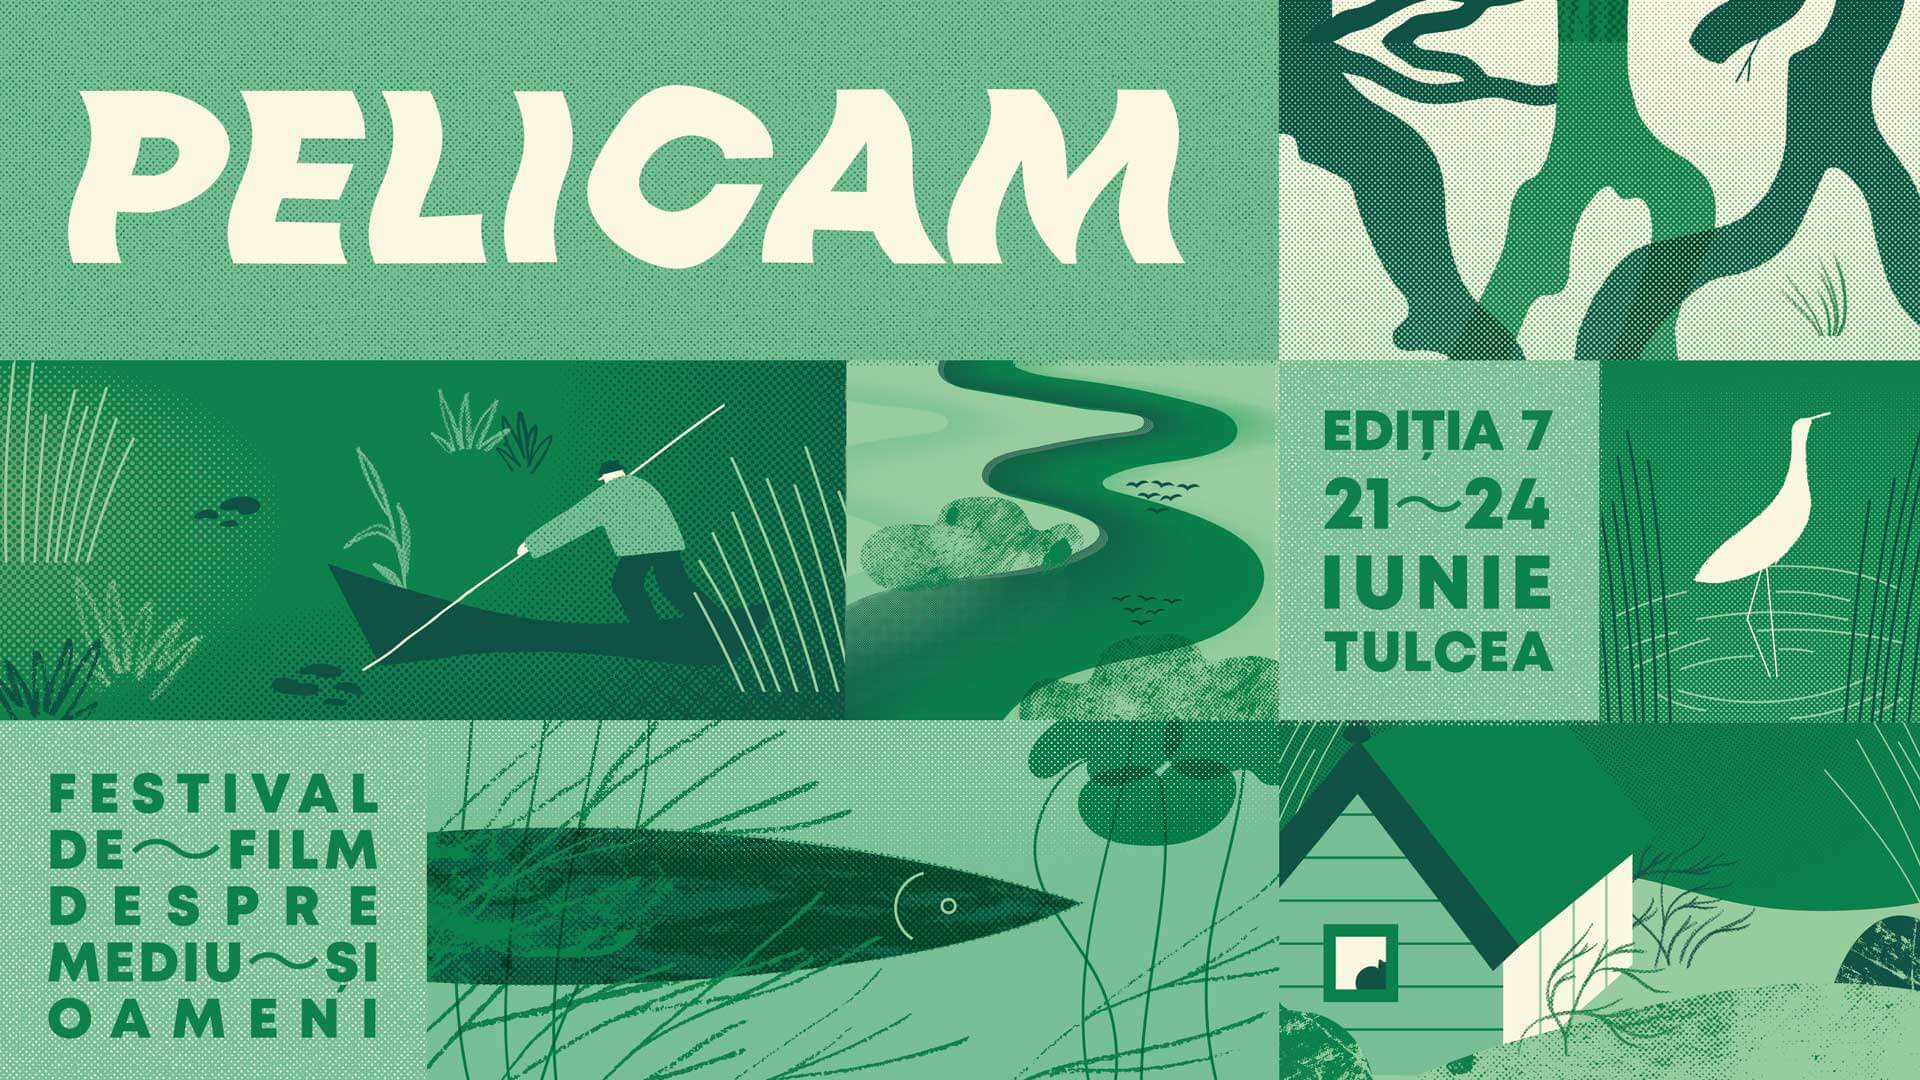 Six films about people and the environment in the main competition of Pelicam